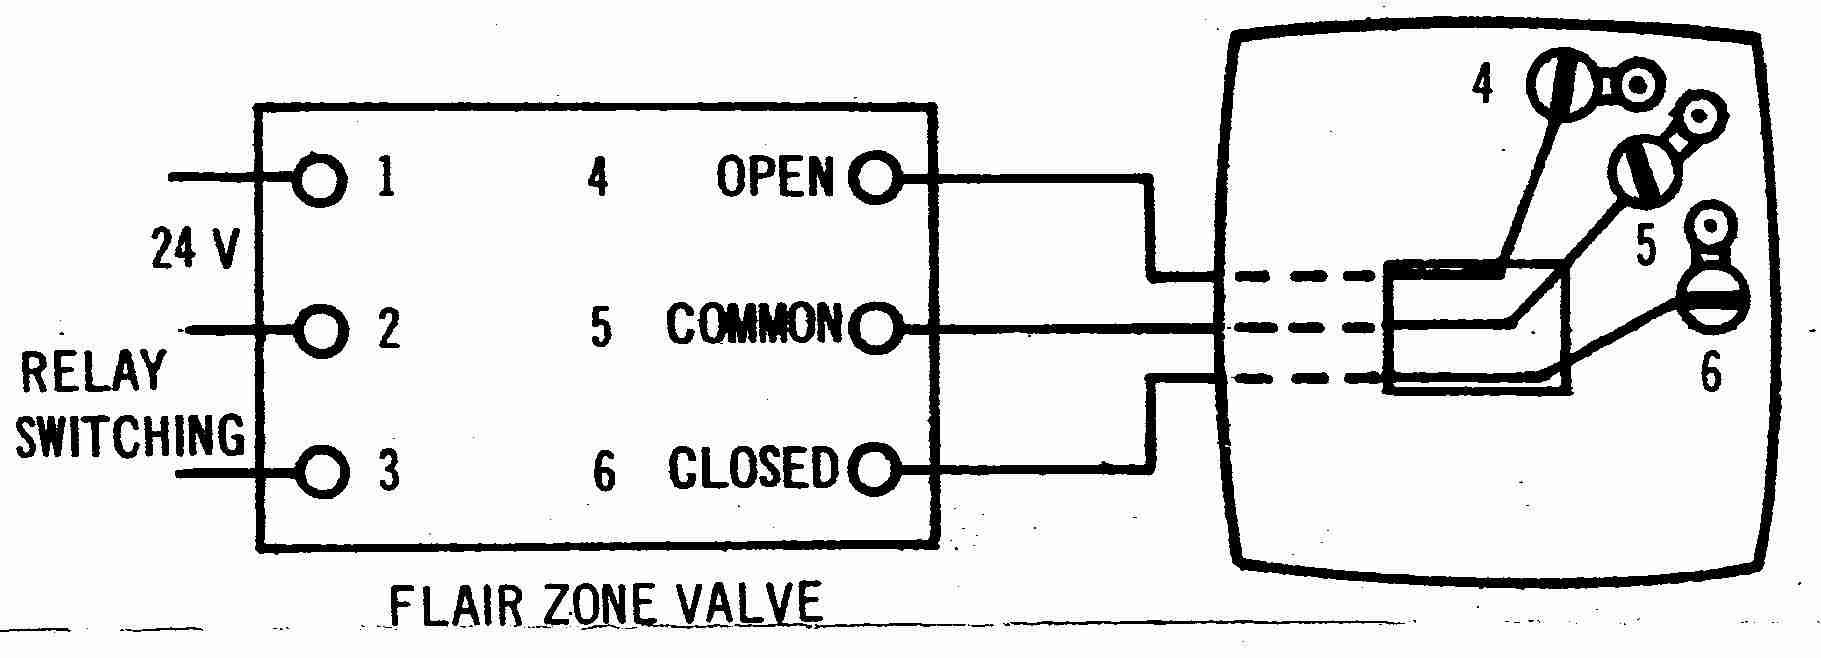 B1A9EBE Taco 571 2 Wiring Diagram | Wiring LibraryWiring Library